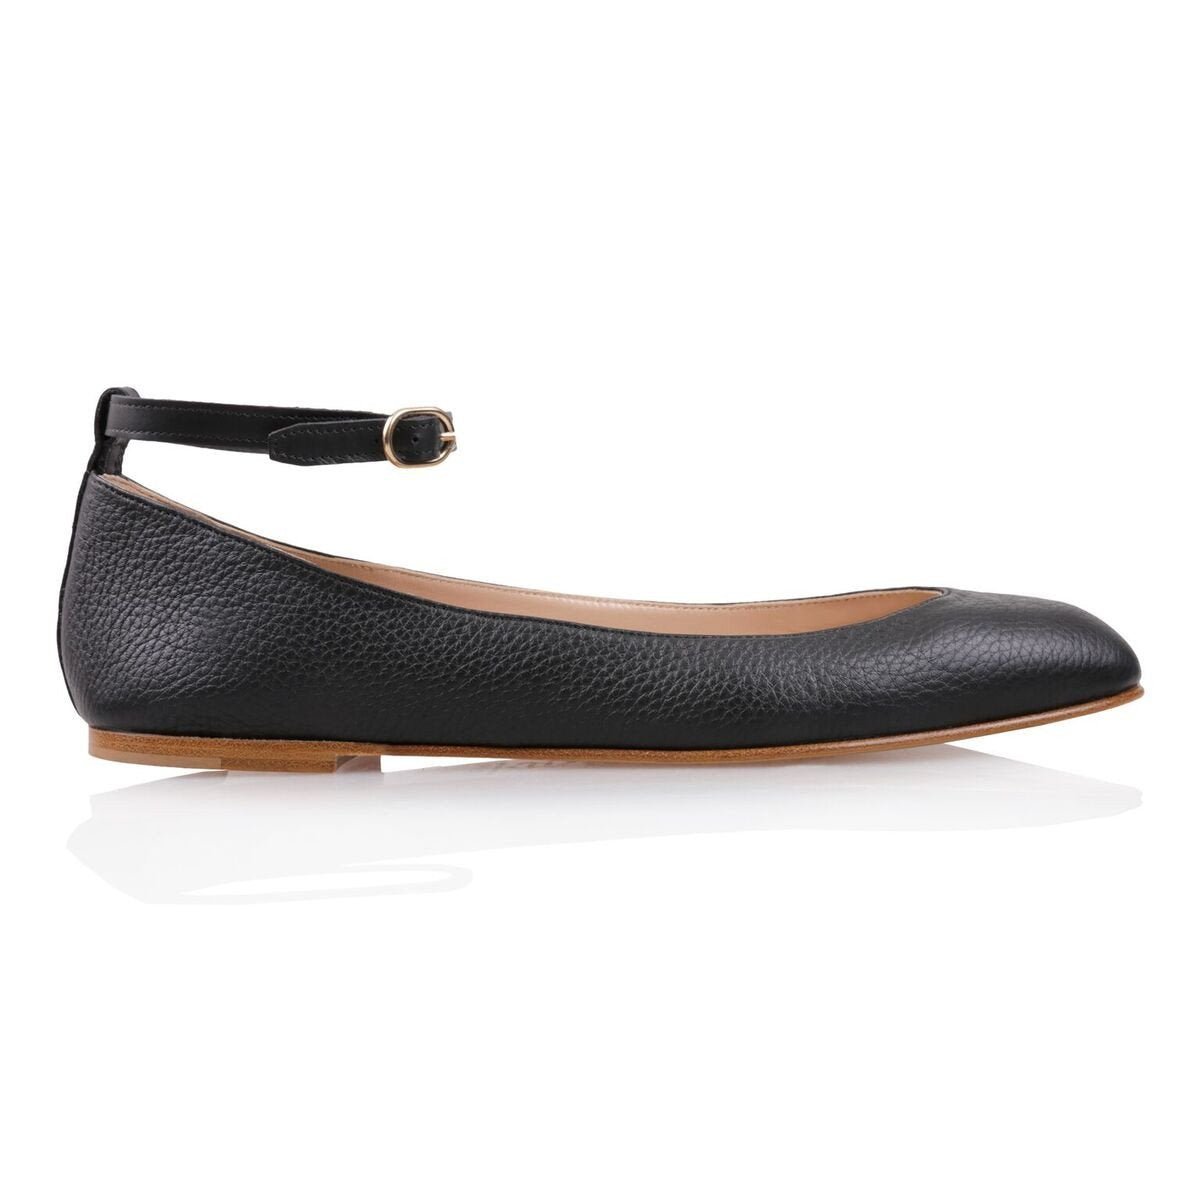 TORINO - Calf Nero, VIAJIYU - Women's Hand Made Sustainable Luxury Shoes. Made in Italy. Made to Order.